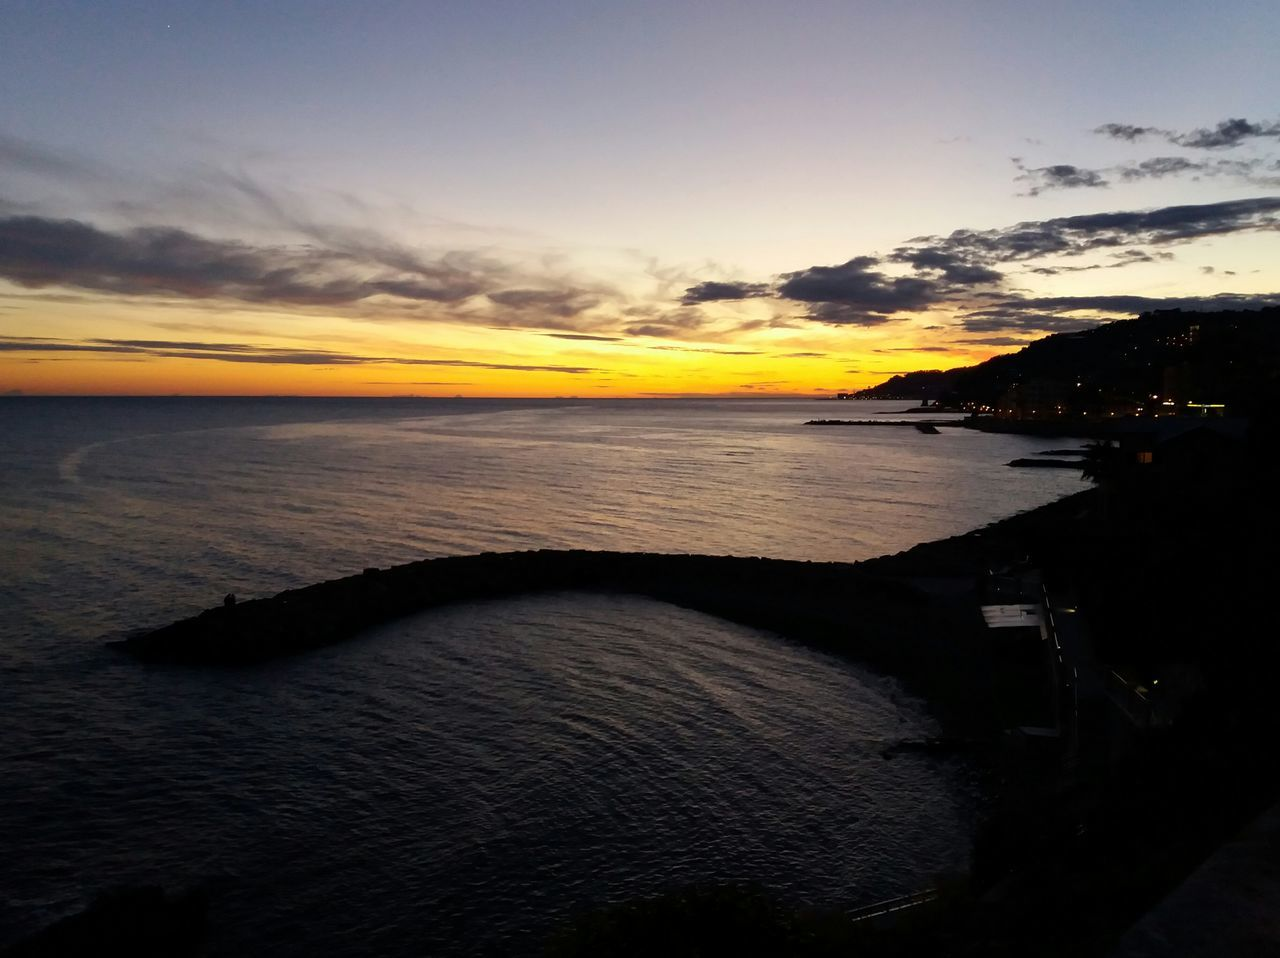 Sunset Sea Dramatic Sky Horizon Over Water No People Social Issues Nature Beauty In Nature Beach Outdoors Scenics Sky Water Landscape Panorama Panoramic Photography Picture Pic Picoftheday Photo